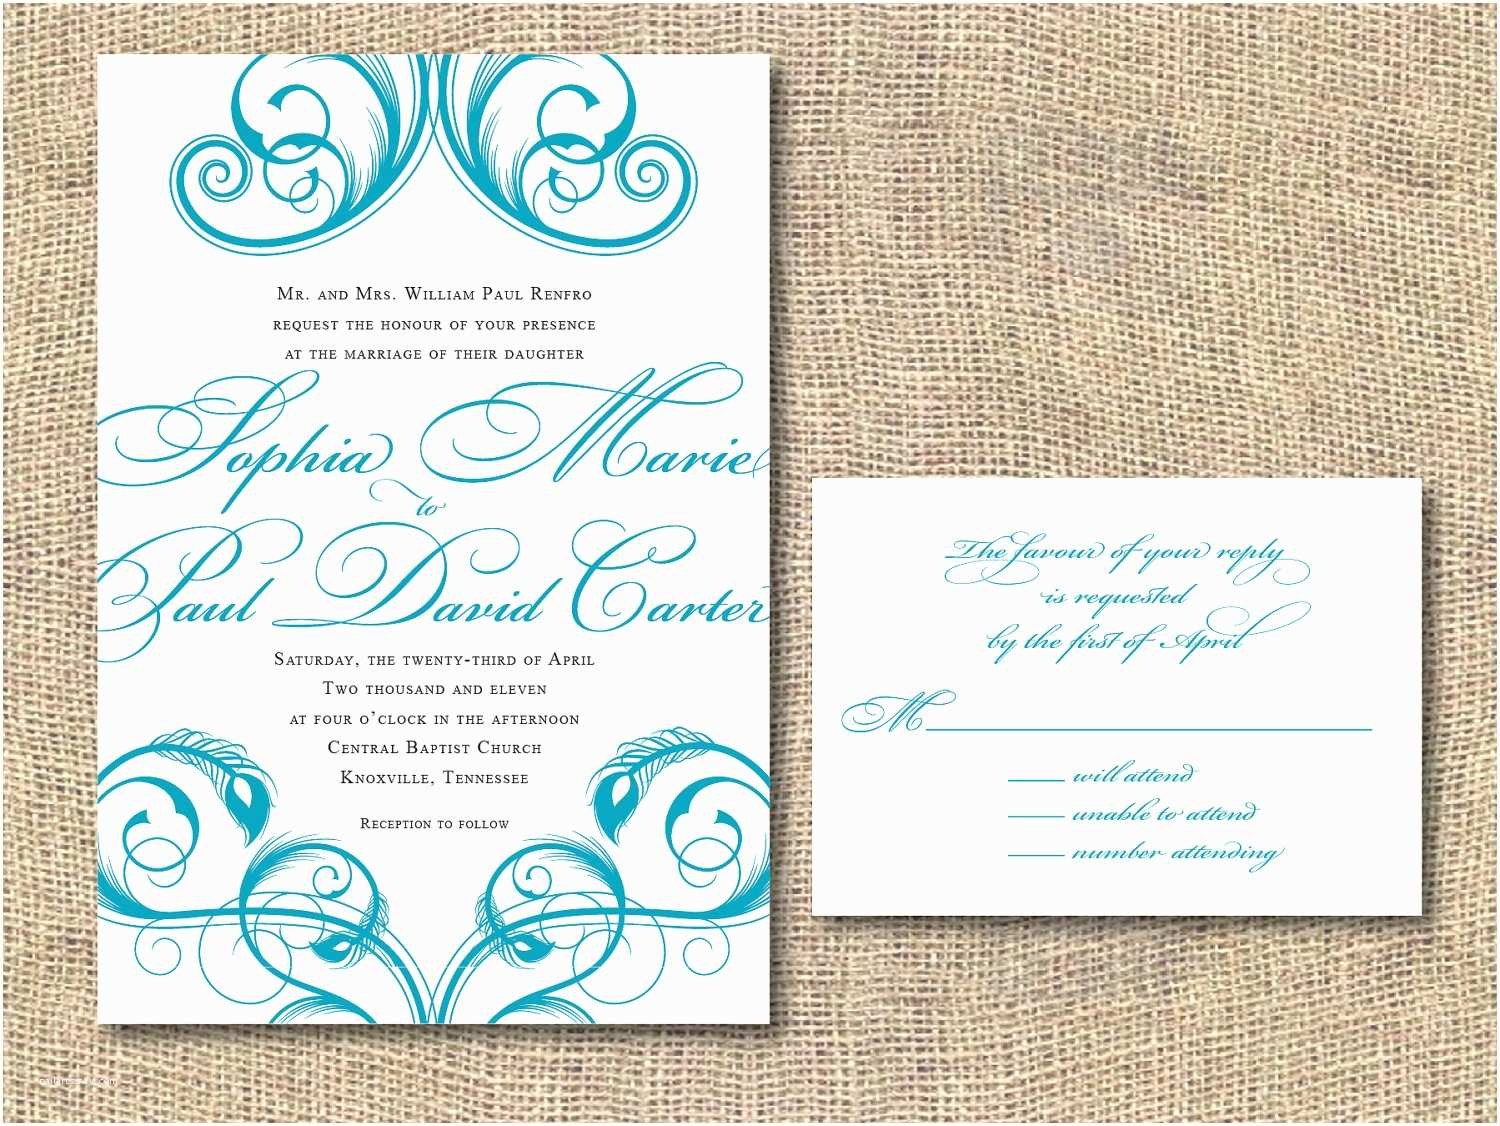 Wedding Invitation Kits Hobby Lobby Hobby Lobby Wedding Invitation Templates Various